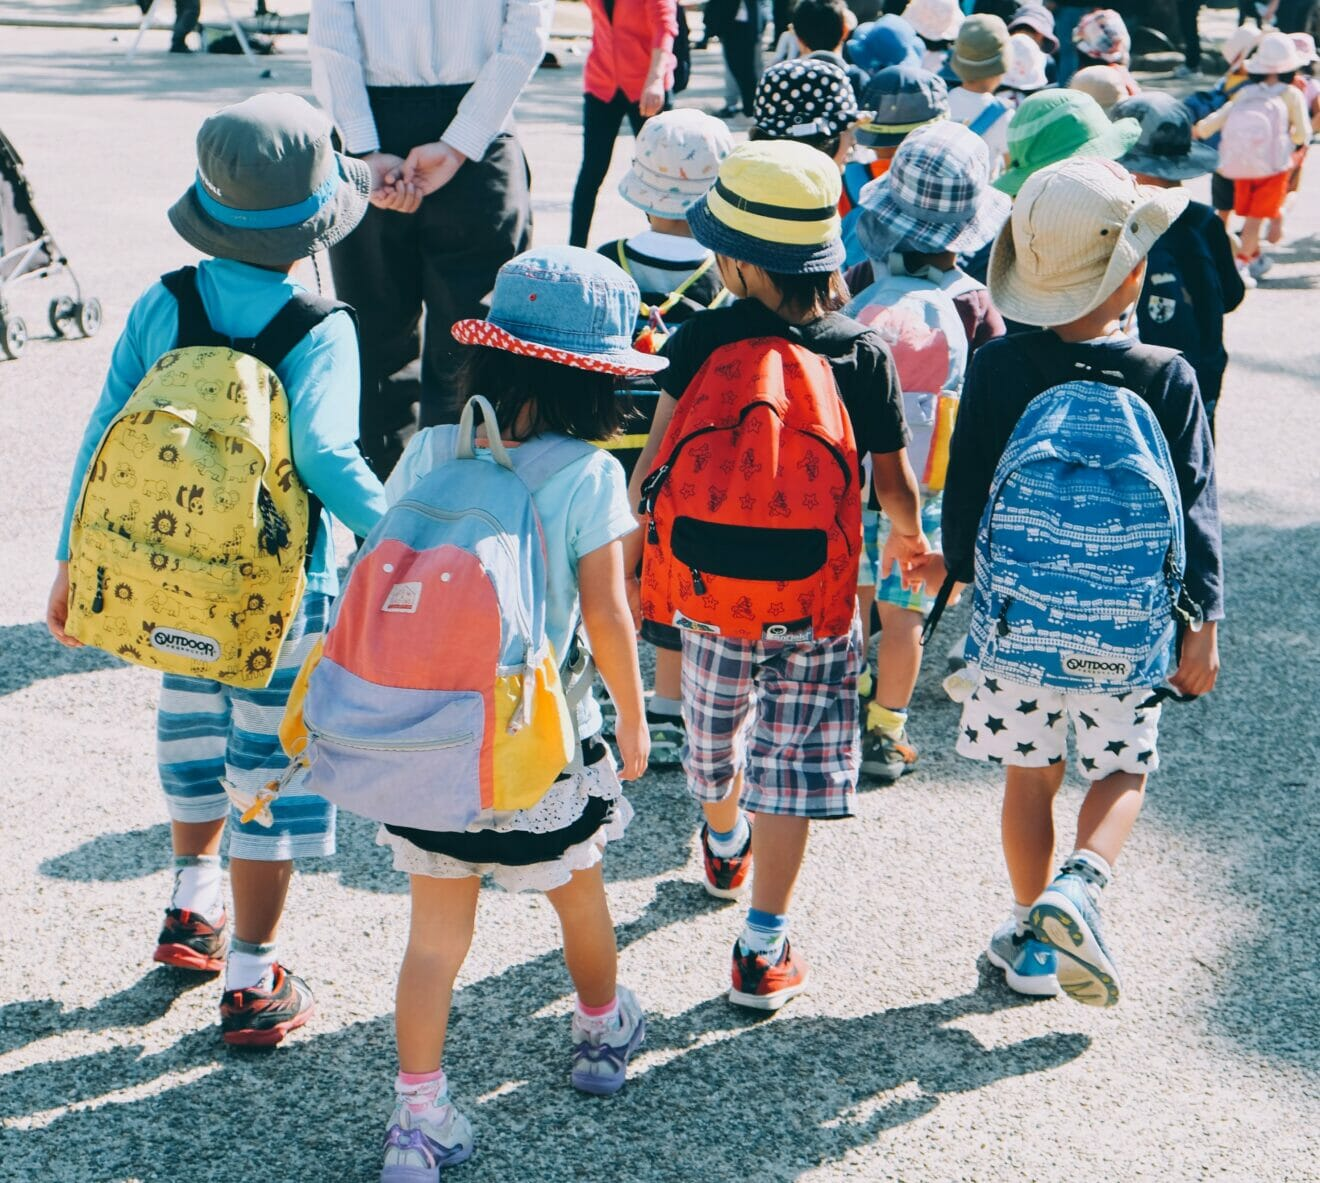 May 2021 Right to Education Commentary